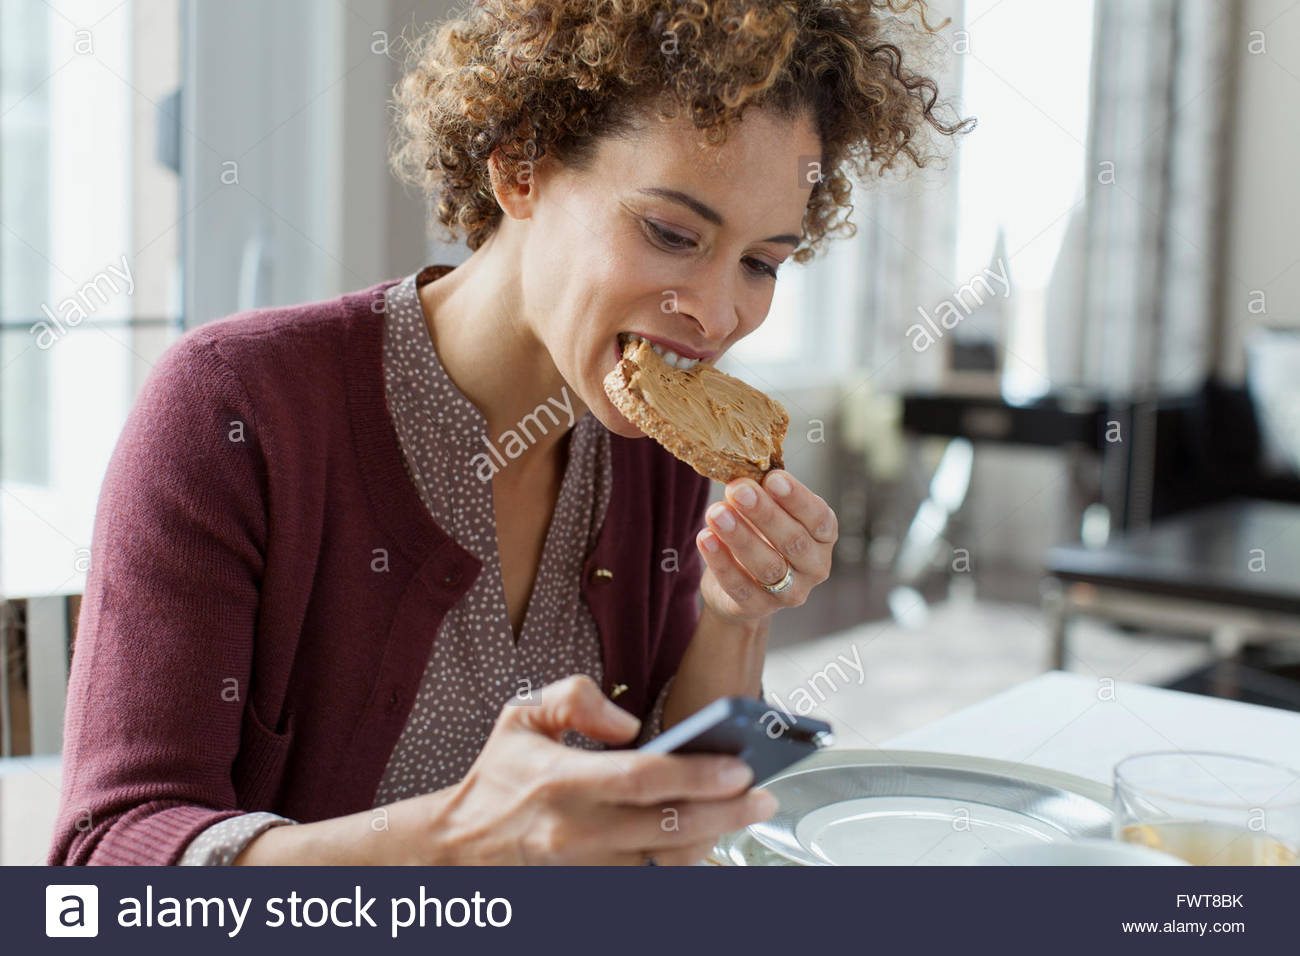 Woman eating toast lors de la vérification de smartphone. Photo Stock